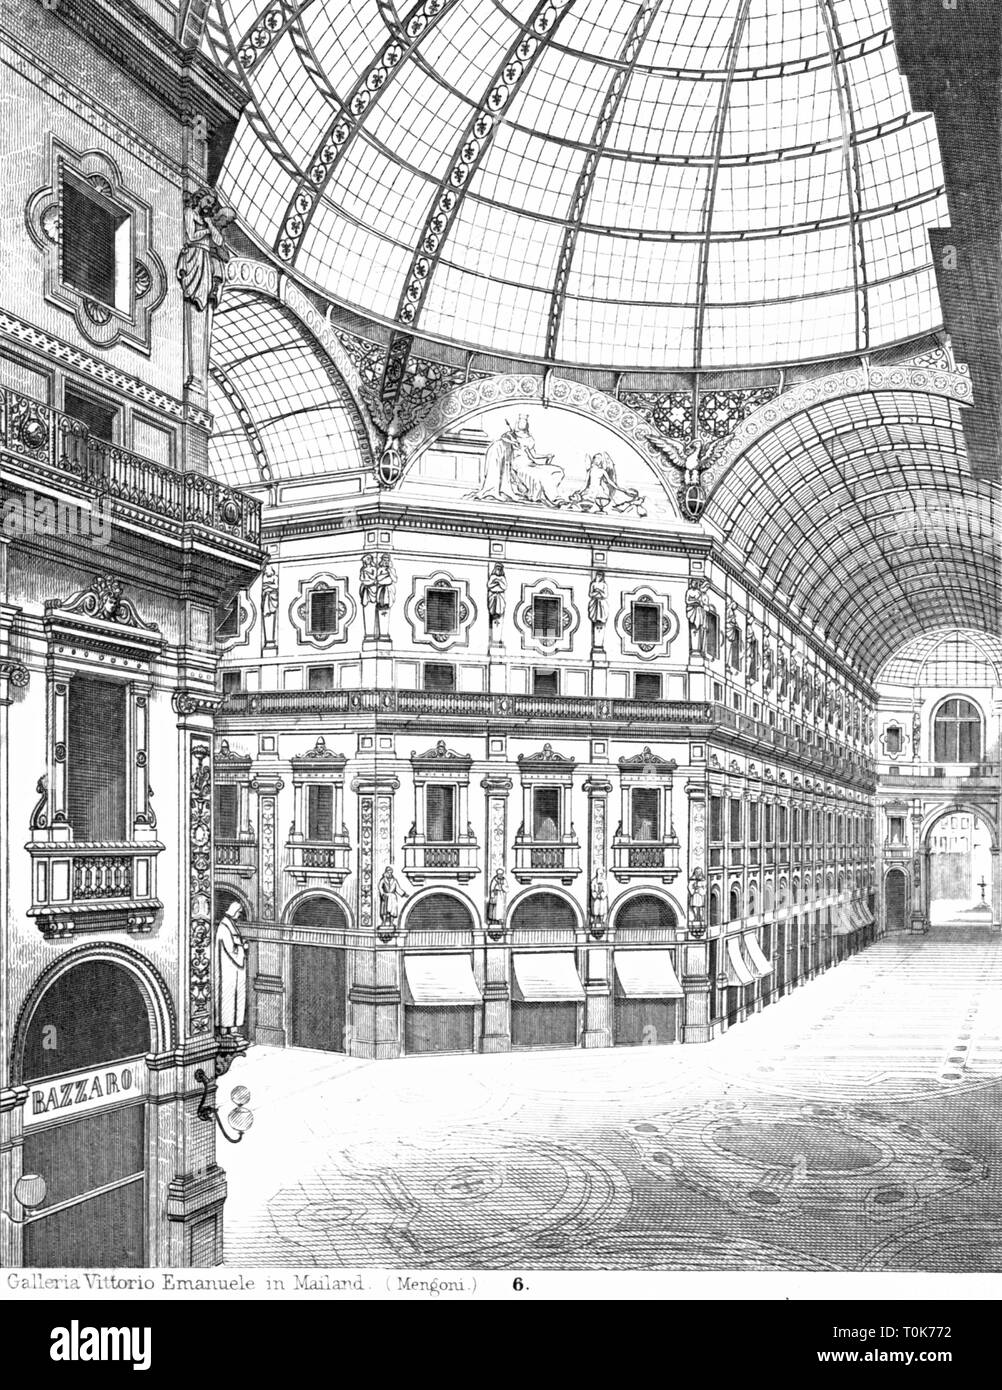 geography / travel, Italy, Milan, buildings, Galleria Vittorio Emanuele II, built 1867 - 1878, interior view, illustration from 'Denkmaeler der Kunst' (Monuments of Art), by Wilhelm Luebke and Carl von Luetzow, 3rd edition, Stuttgart 1879, volume 2, steel engraving chapter on architecture, plate LXIII, Denkmaler, Denkmäler, Lubke, Lübke, Lutzow, Lützow, Europe, 19th century, glass dome, glass domes, arcade, arcades, gallery, historic, historical, Additional-Rights-Clearance-Info-Not-Available - Stock Image